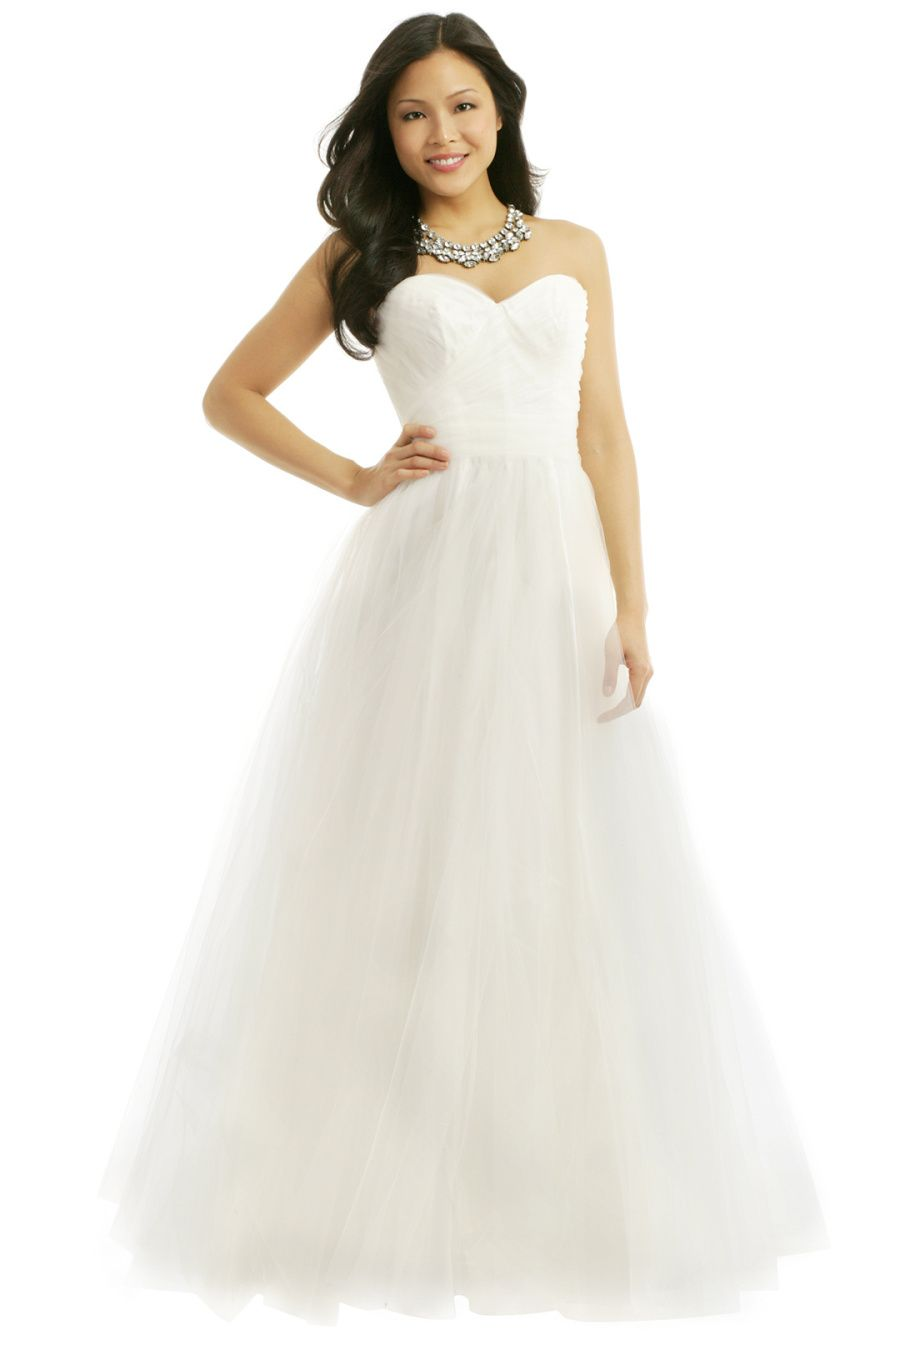 50 Gorgeous Wedding Dresses You Won T Believe Cost Less Than 1 000 Wedding Dresses Under 500 Rent Wedding Dress Ball Gowns